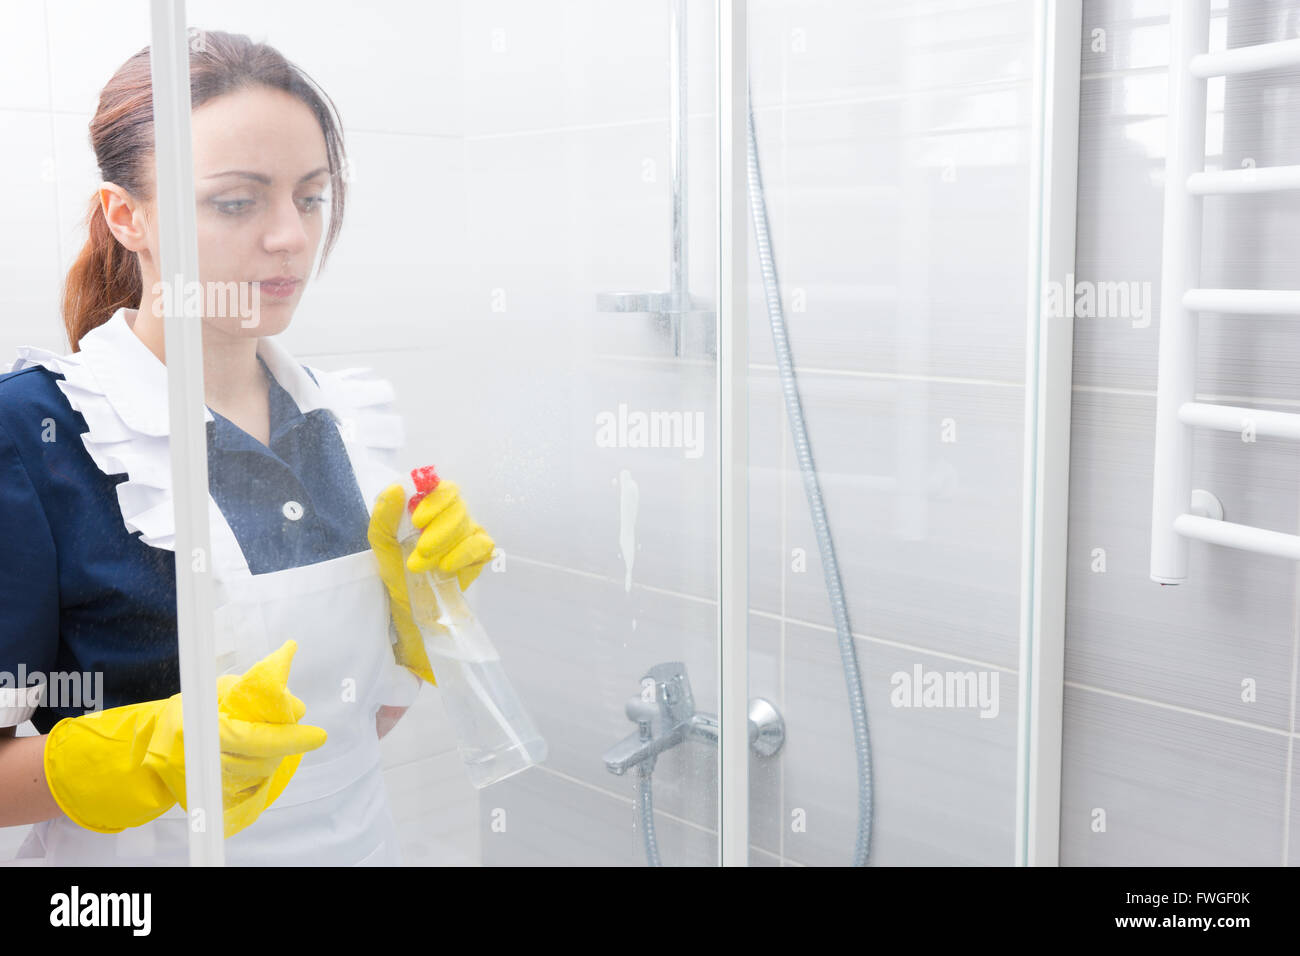 White apron maid - Maid Or Housekeeper Wearing A White Apron And Uniform Cleaning A White Bathroom Spraying The Glass